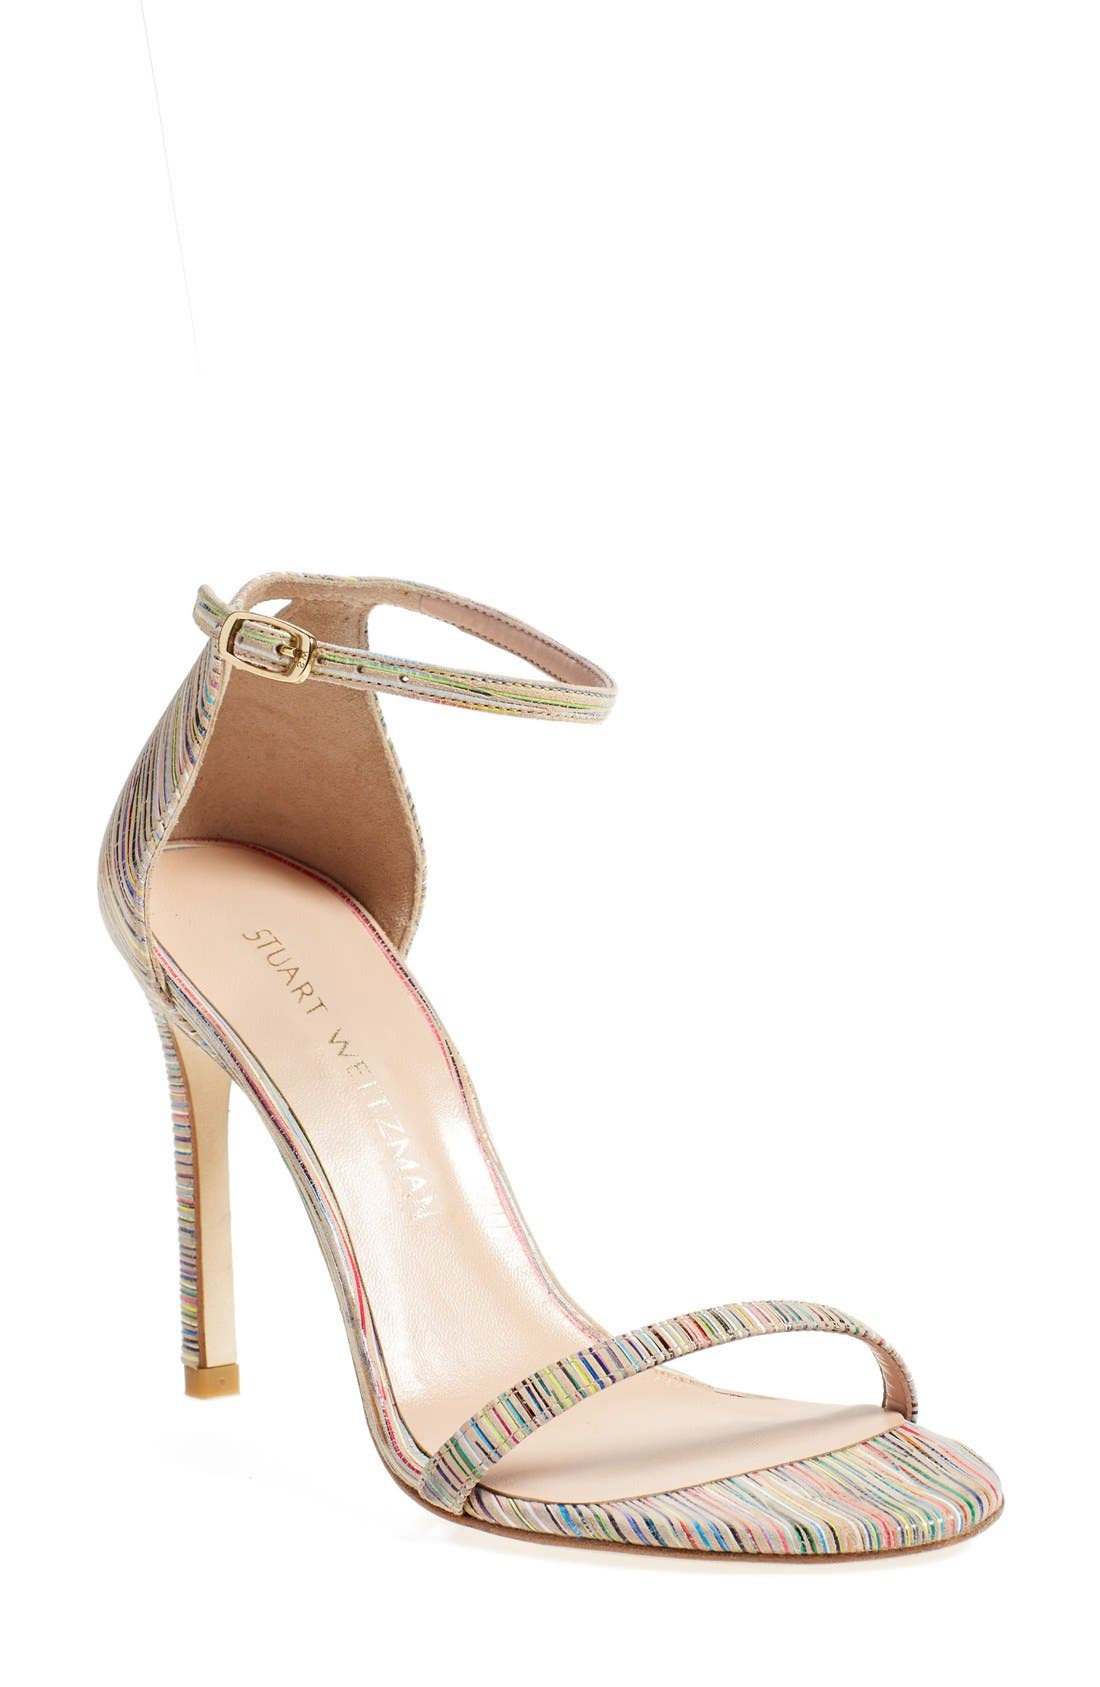 Nudistsong Ankle Strap Sandal,                             Main thumbnail 21, color,